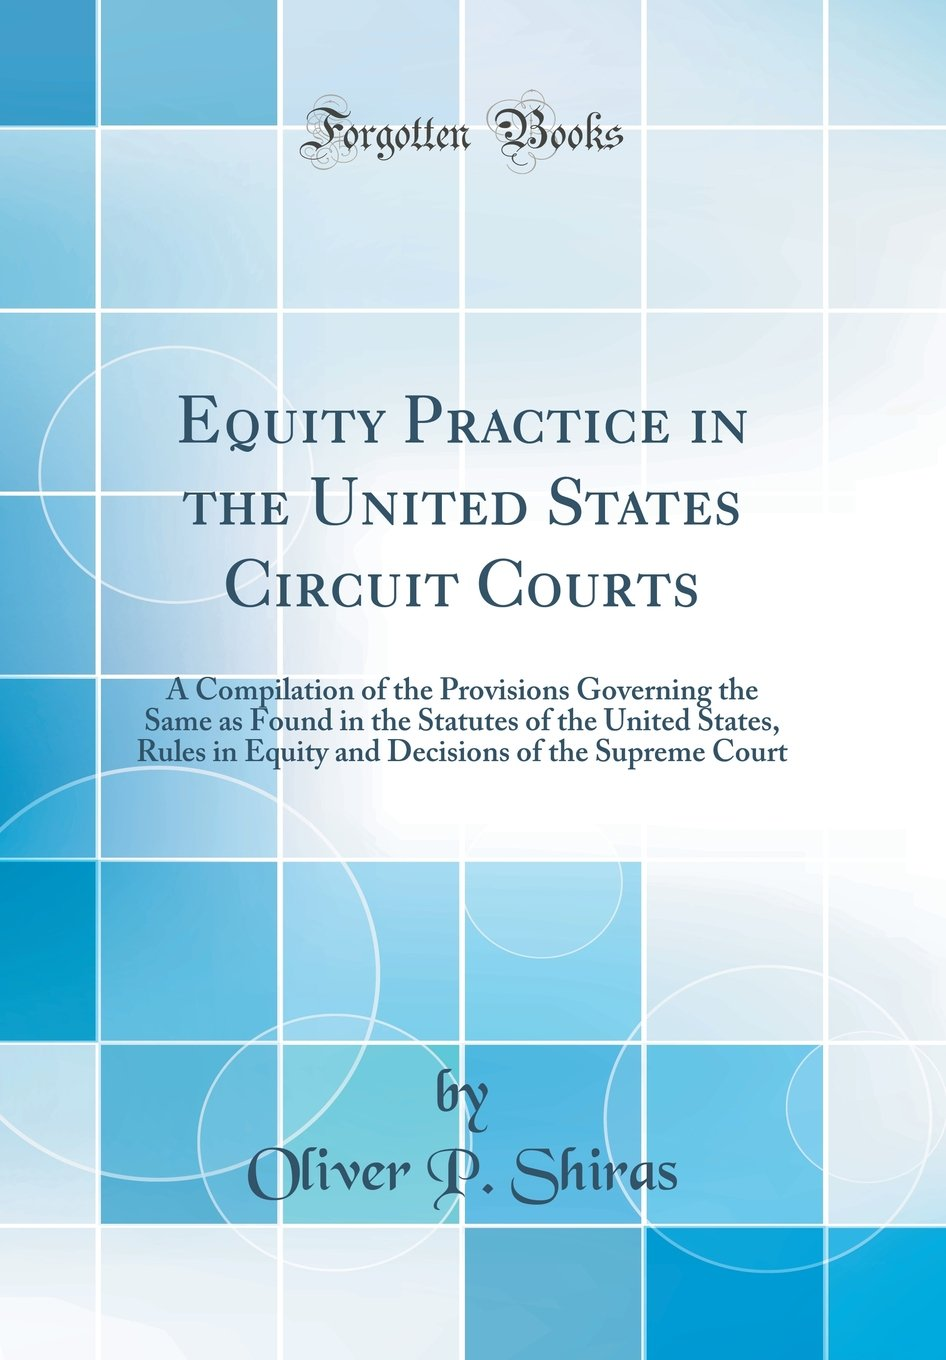 Equity Practice In The United States Circuit Courts A Compilation Diagram Of Provisions Governing Same As Found Statutes